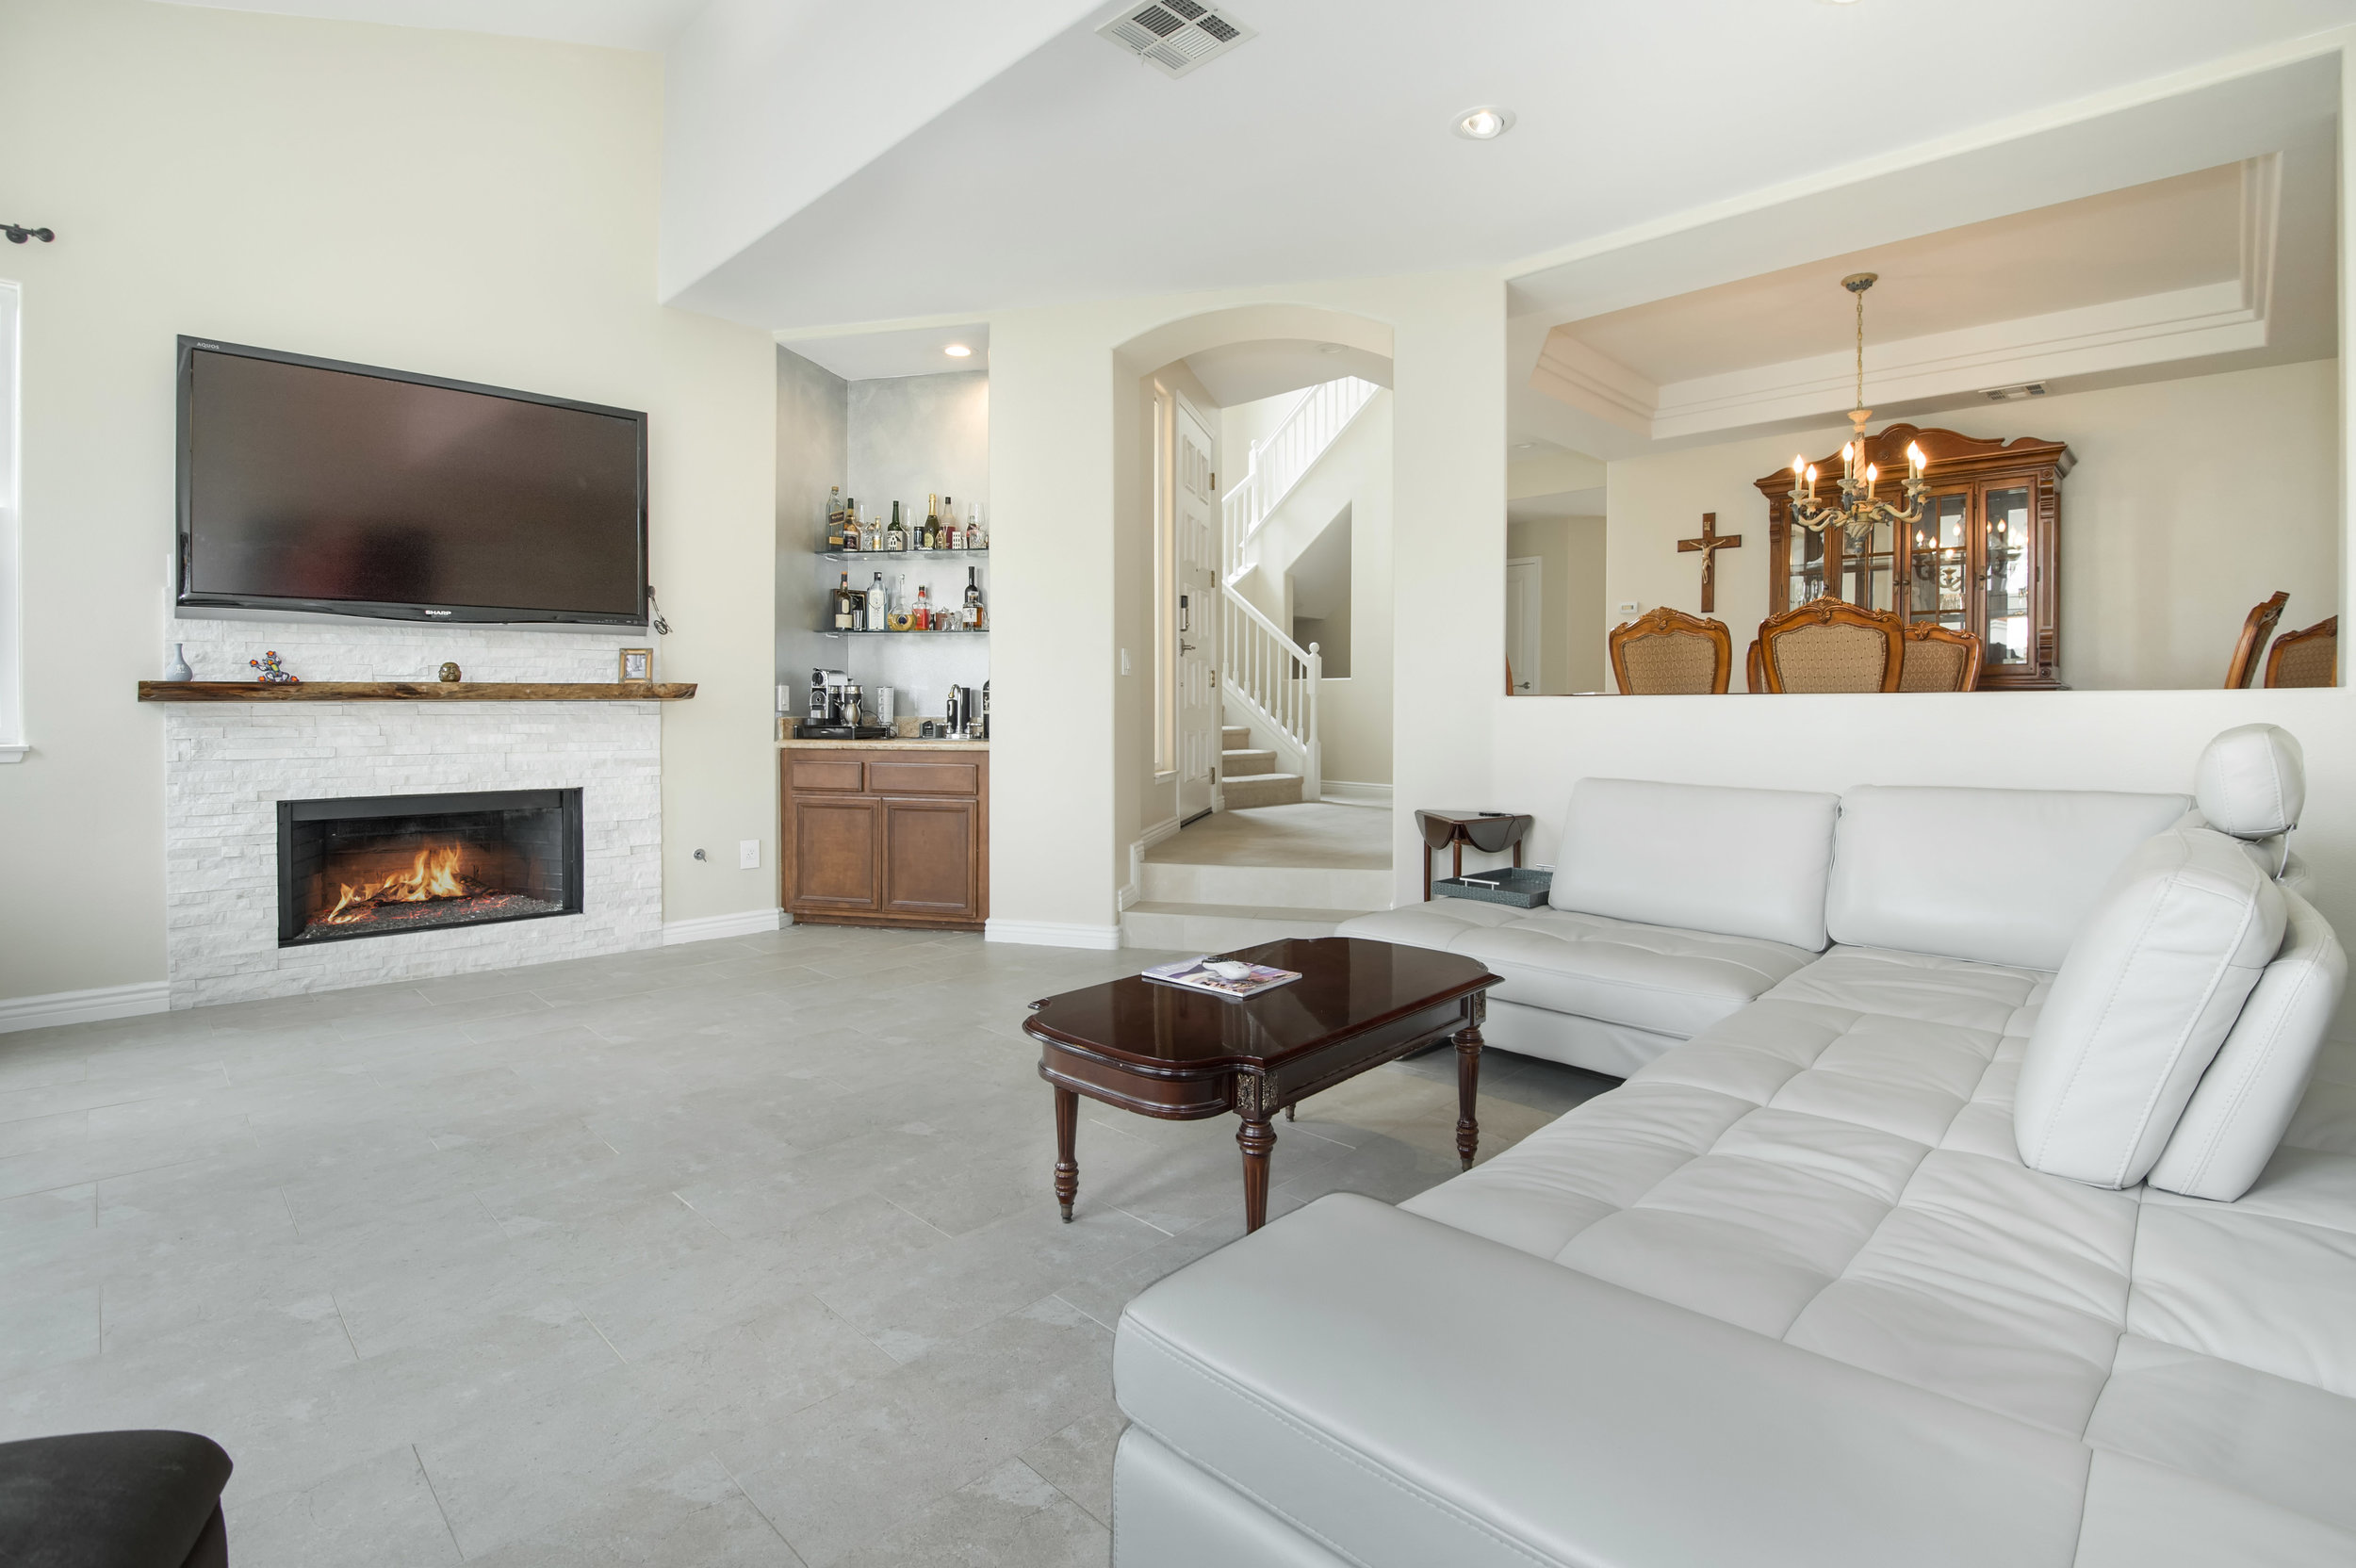 003 living room 3 6463 Zuma View Place Malibu For Sale The Malibu Life Team Luxury Real Estate.jpg